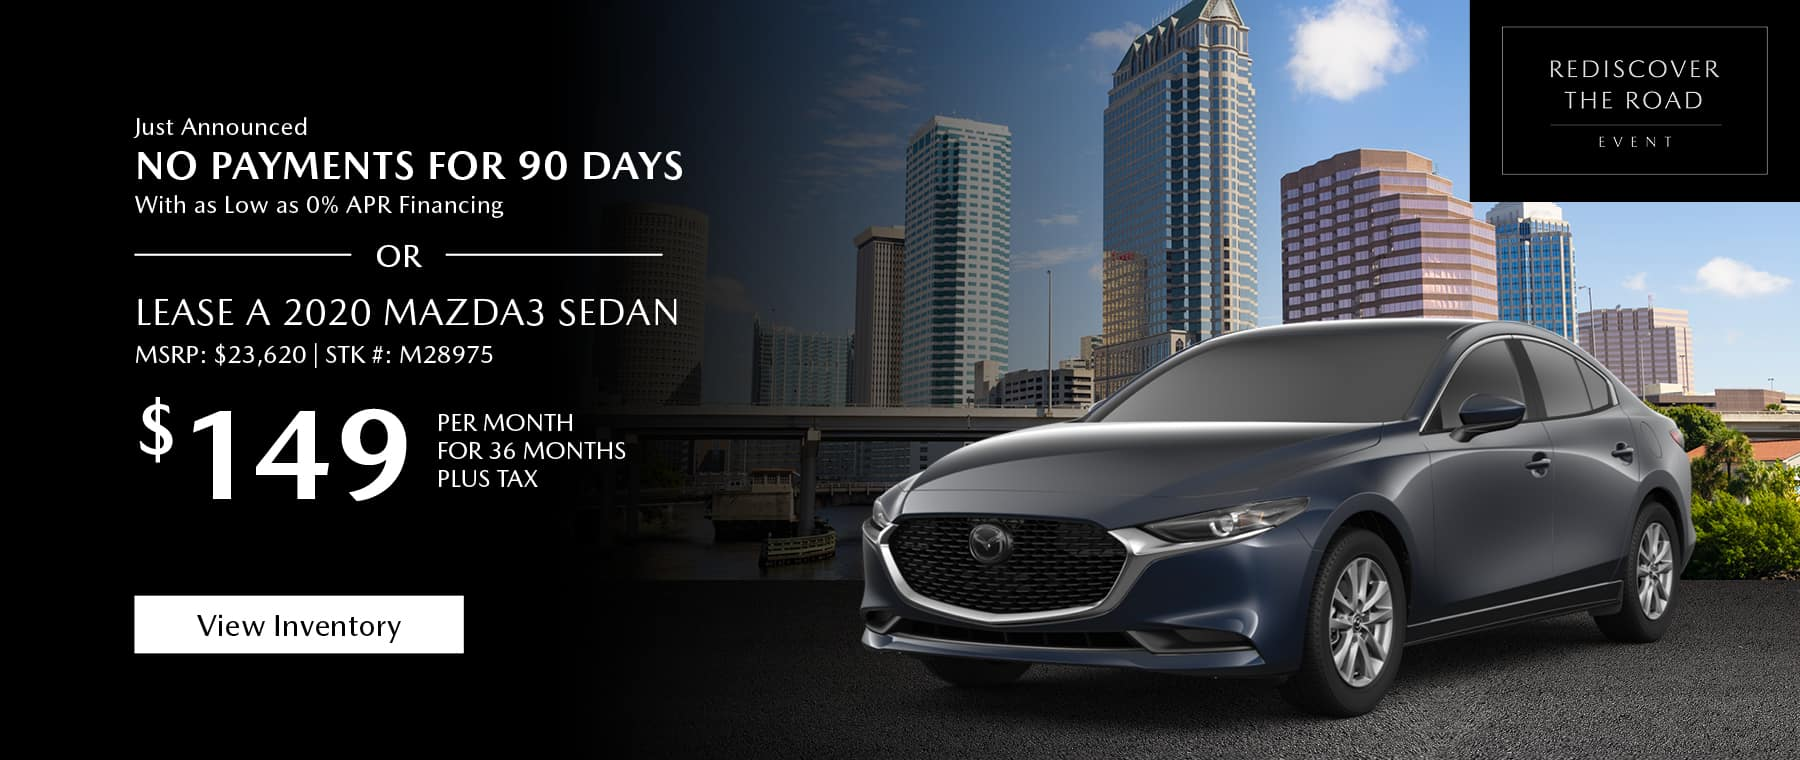 Just Announced, No payments for 90 days with as low as %0 APR financing, or lease the 2020 Mazda3 sedan for $149 per month, plus tax for 36 months. Click or tap here to view our inventory.